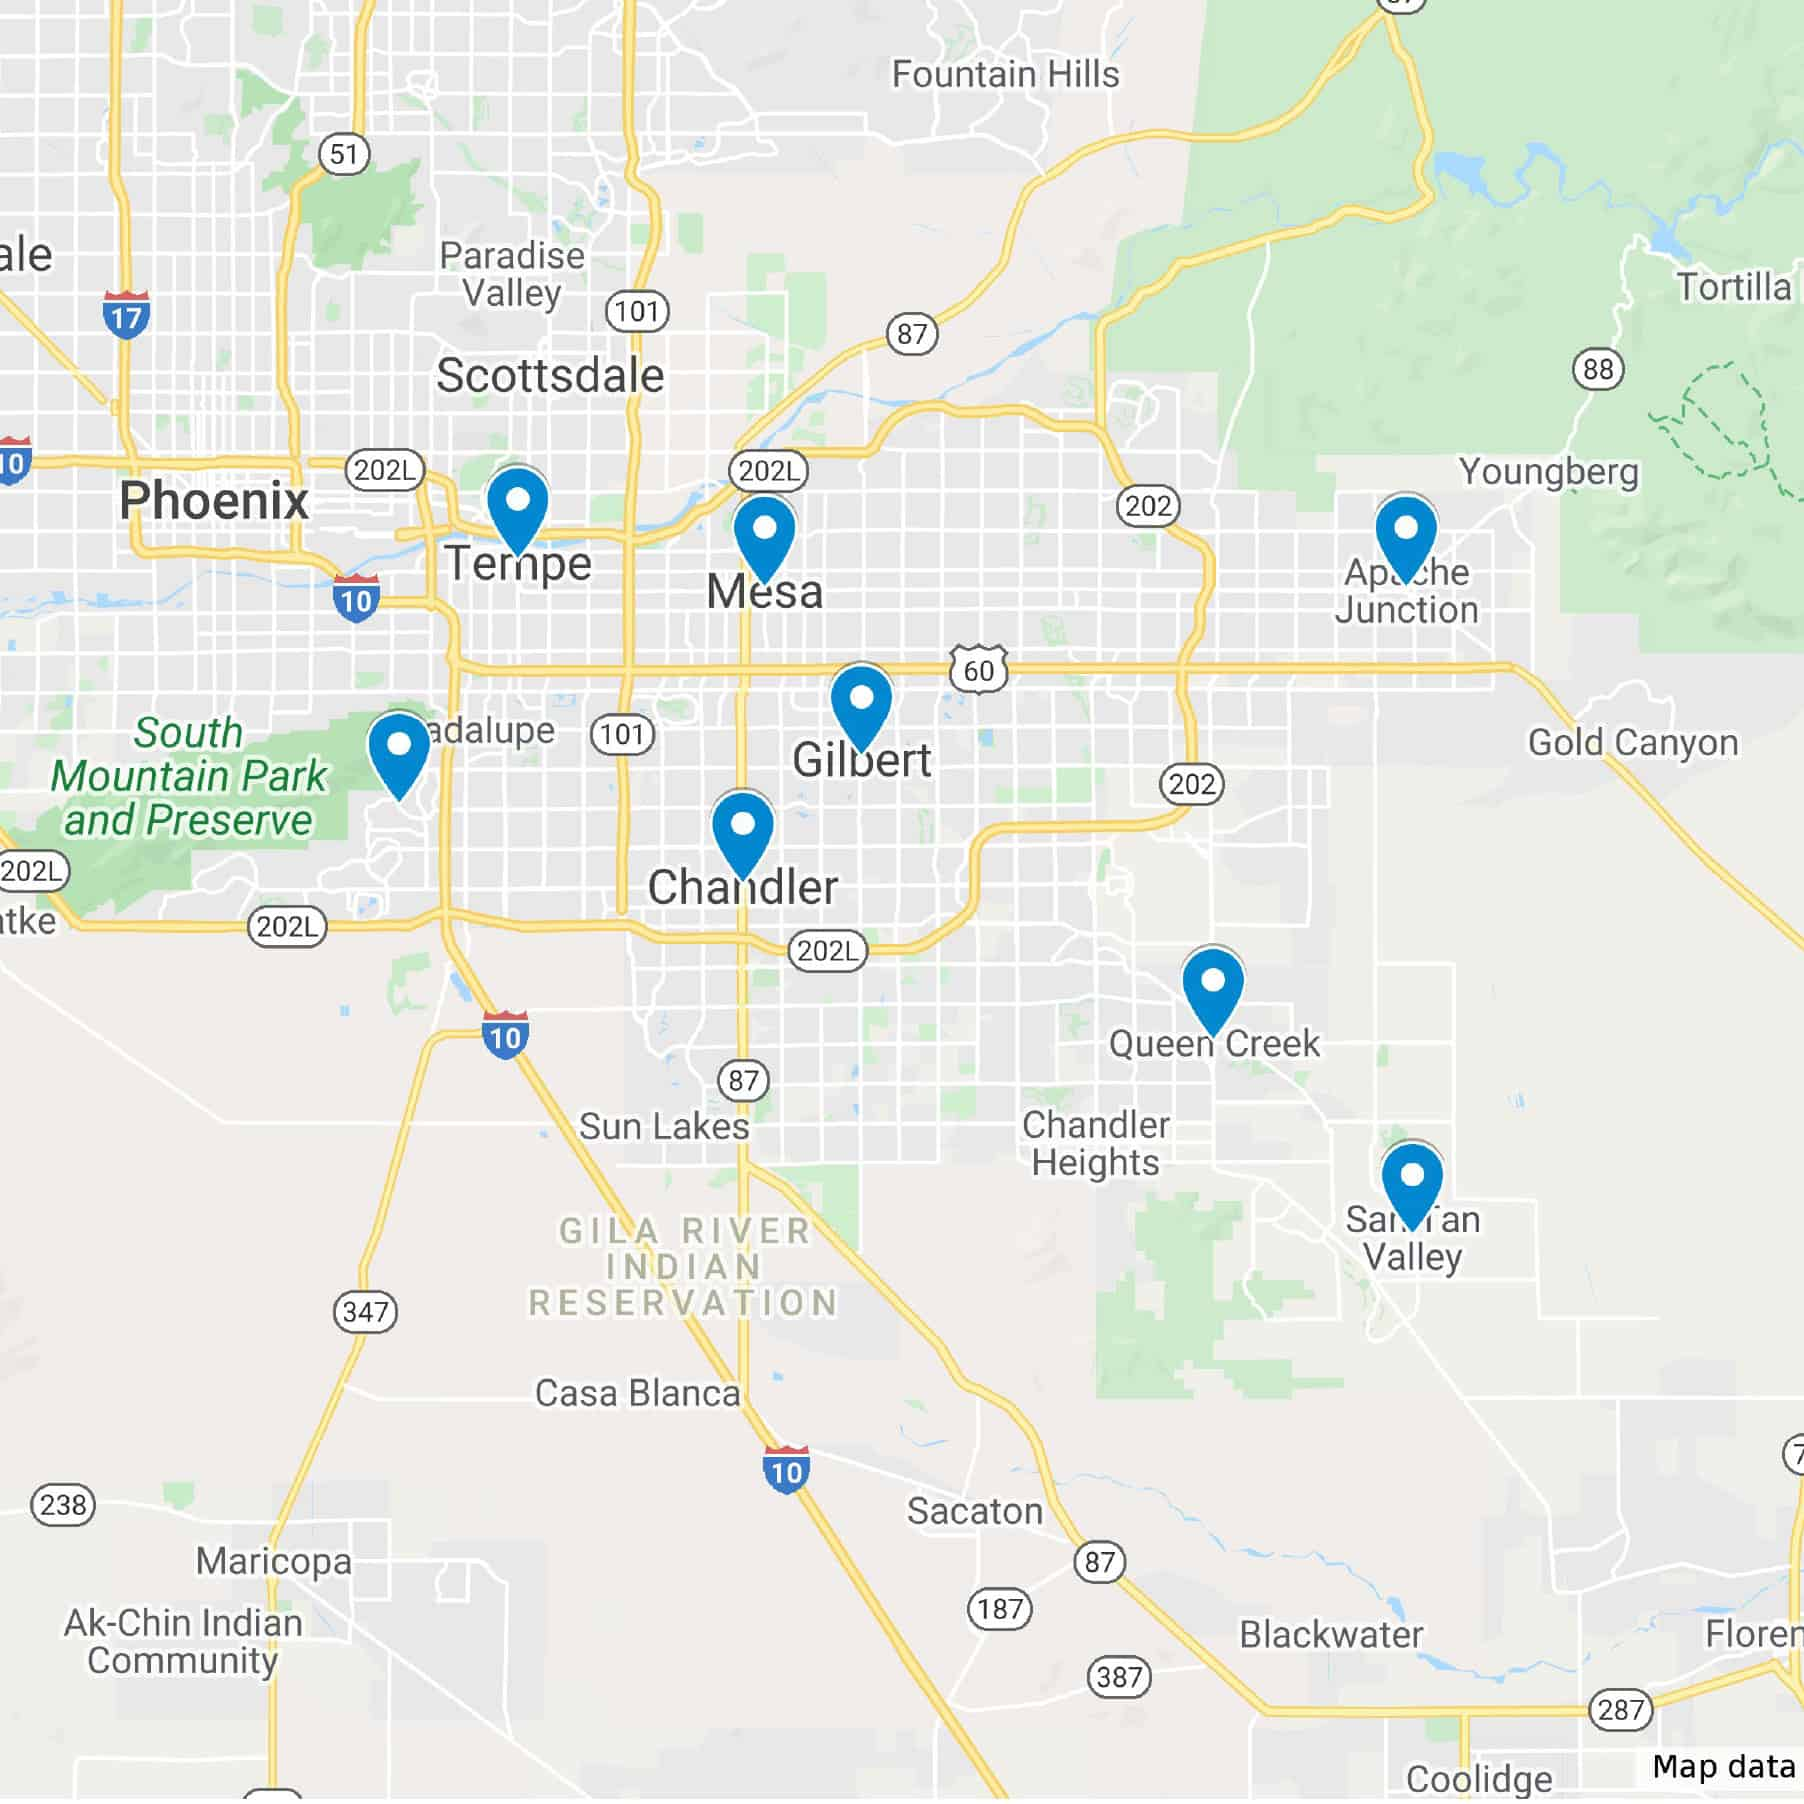 google map of arizona with pins for service areas